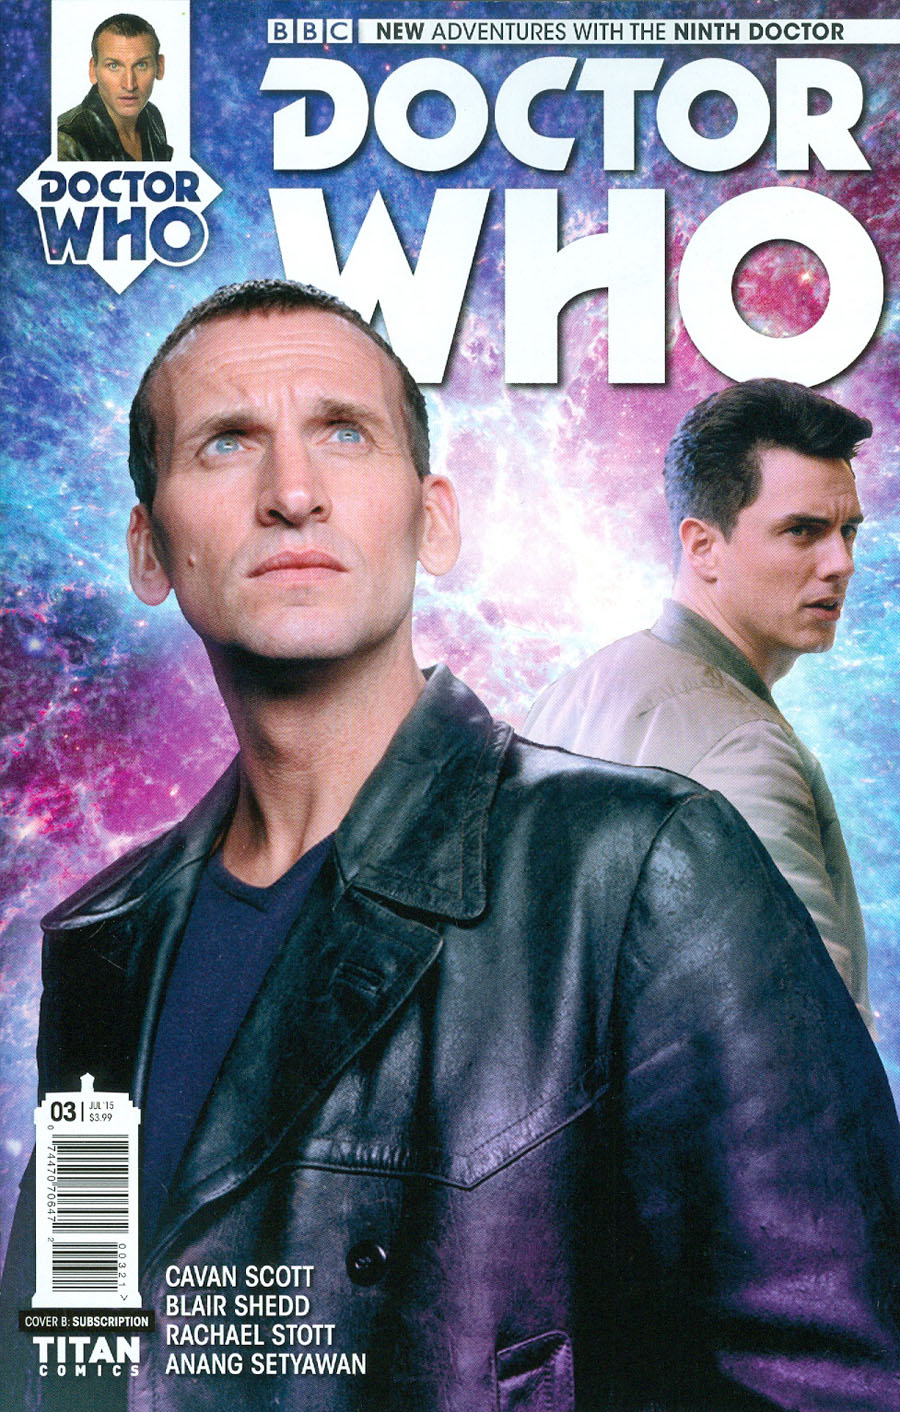 Doctor Who 9th Doctor #3 Cover B Variant Photo Subscription Cover